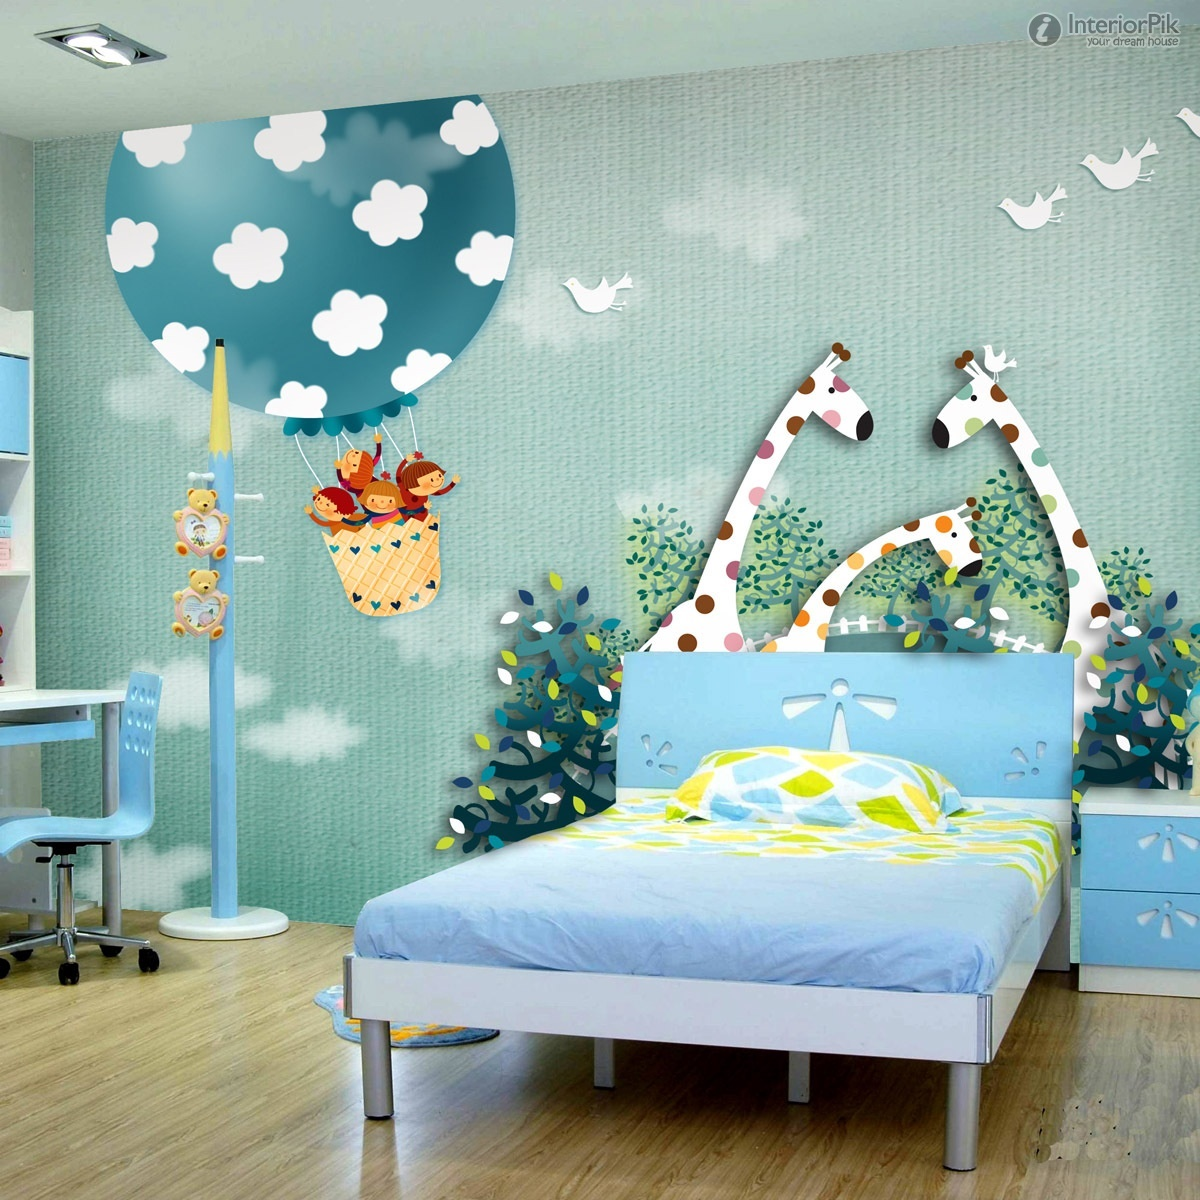 Childrens bedroom wallpaper ideas home decor uk for Childrens mural wallpaper